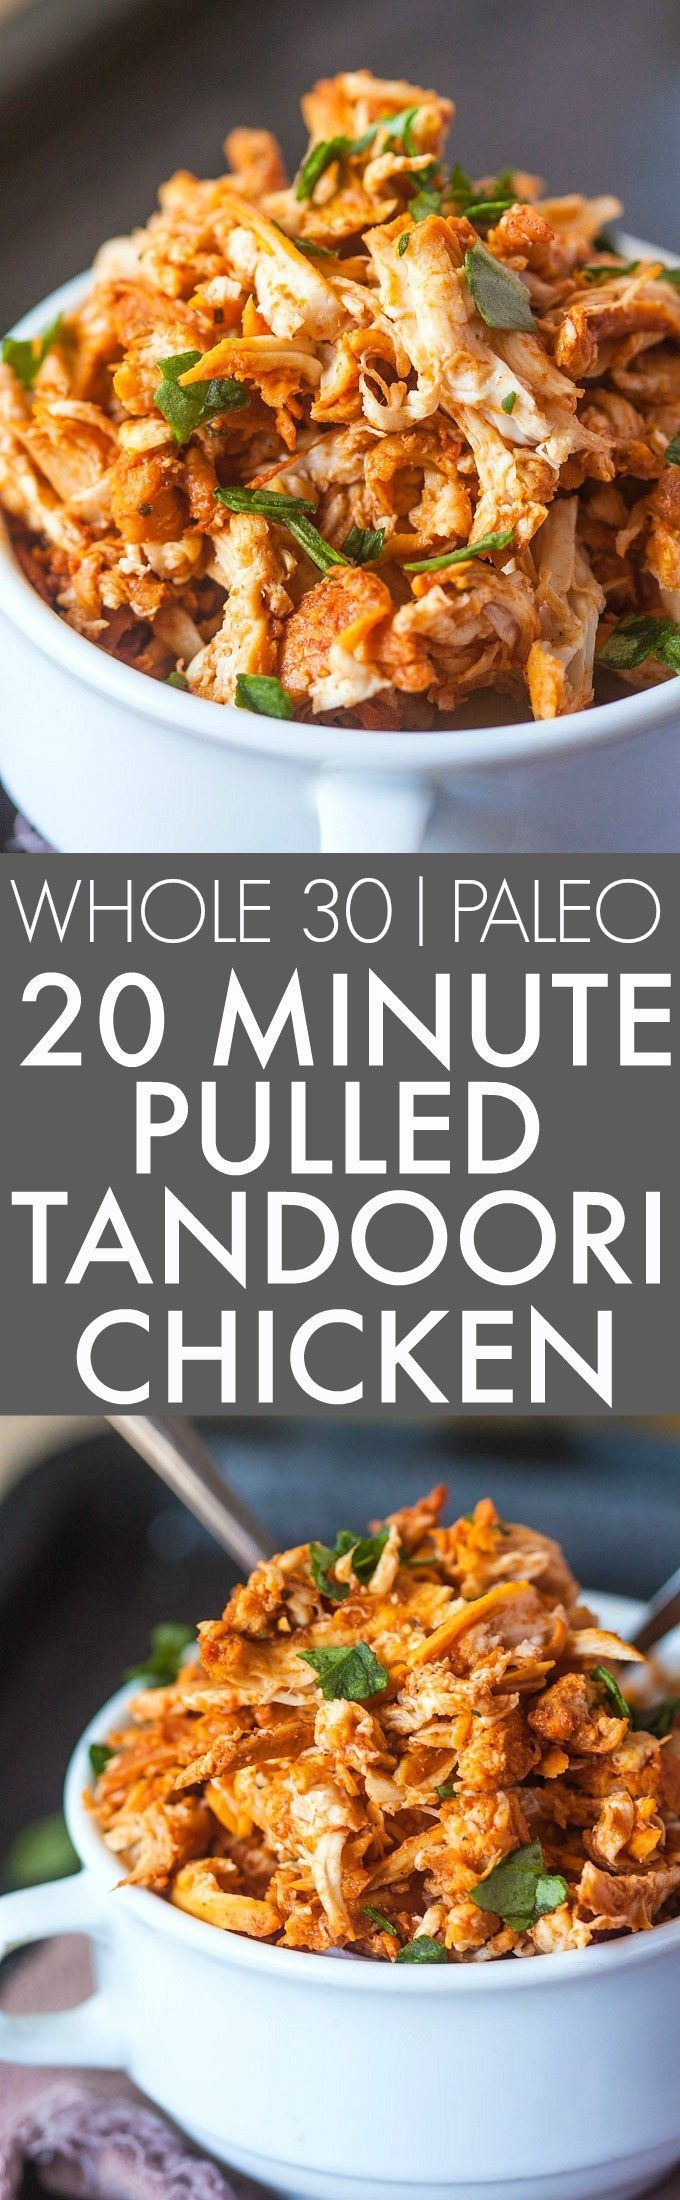 20 Minute Stovetop Pulled Tandoori Chicken (Whole 30, Paleo)- Whole30 Friendly juicy, moist and EASY pulled tandoori chicken perfect for a low carb, high protein and flavorful meal- Lunch, dinner and freezer friendly! {paleo, gluten free, whole30}